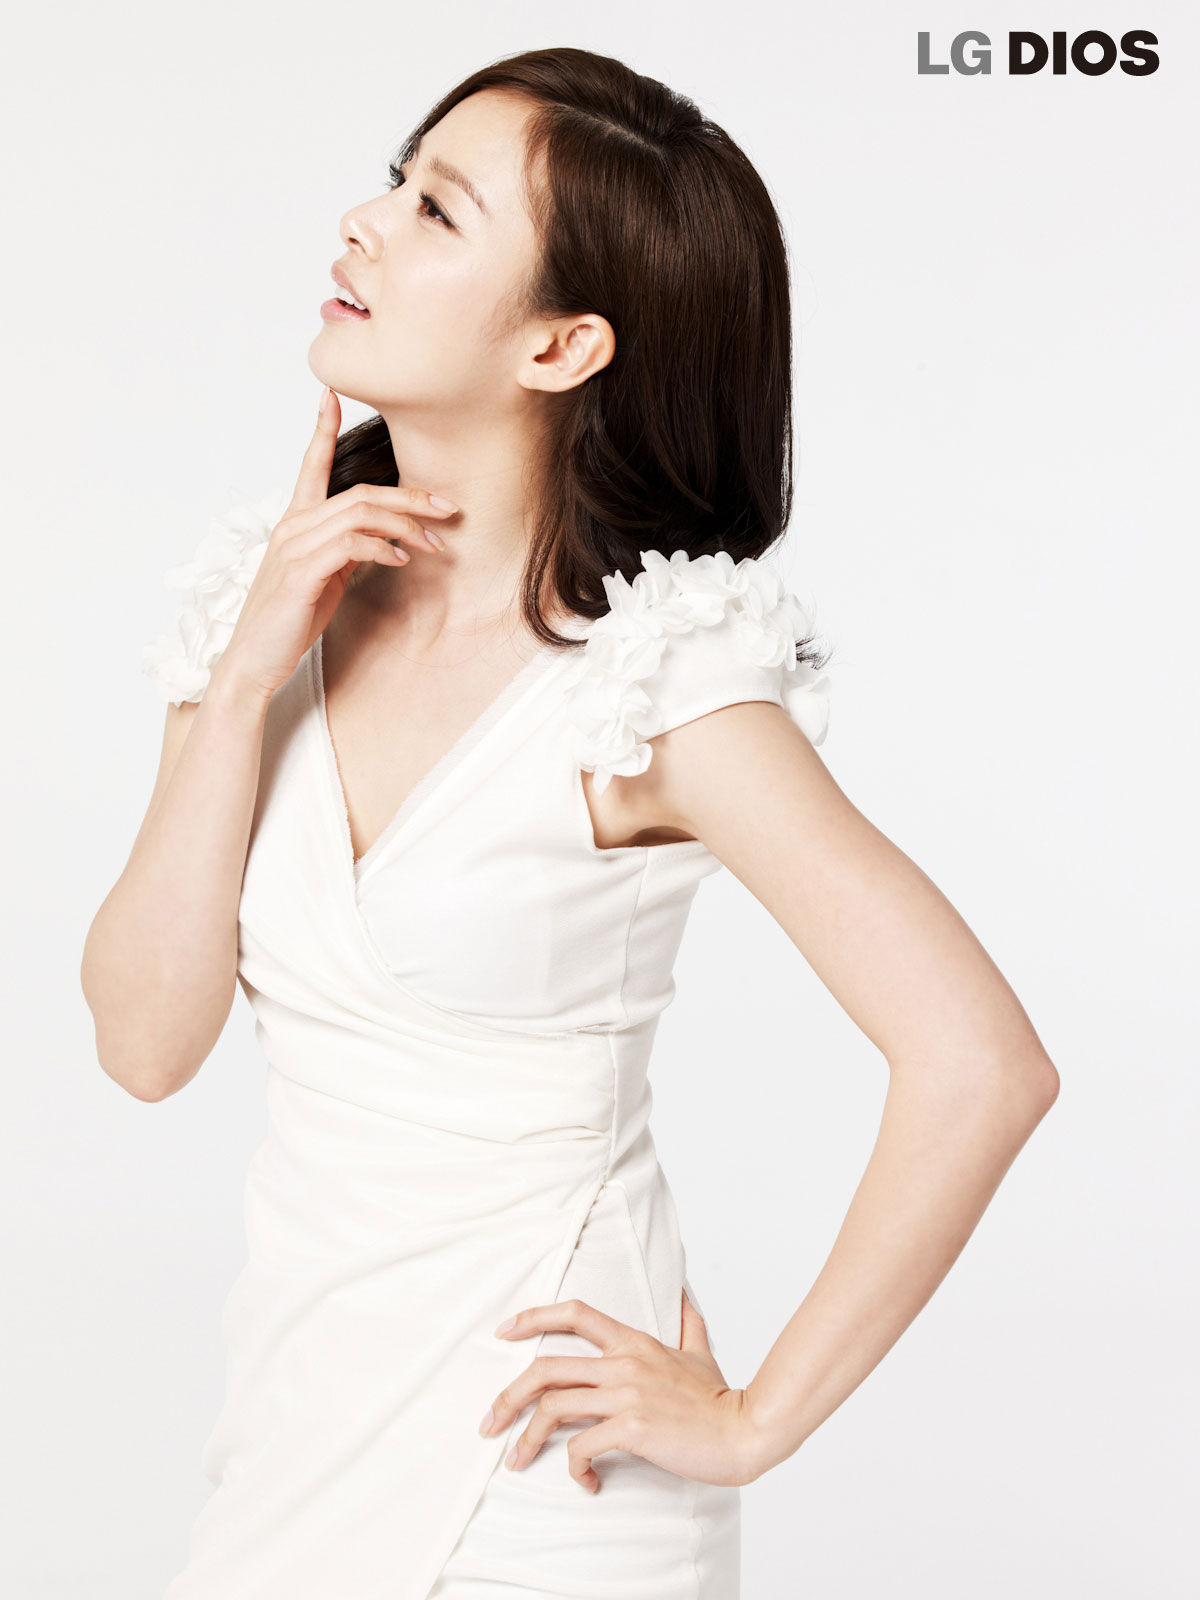 Kim Tae Hee LG DIOS 2011 advertisement